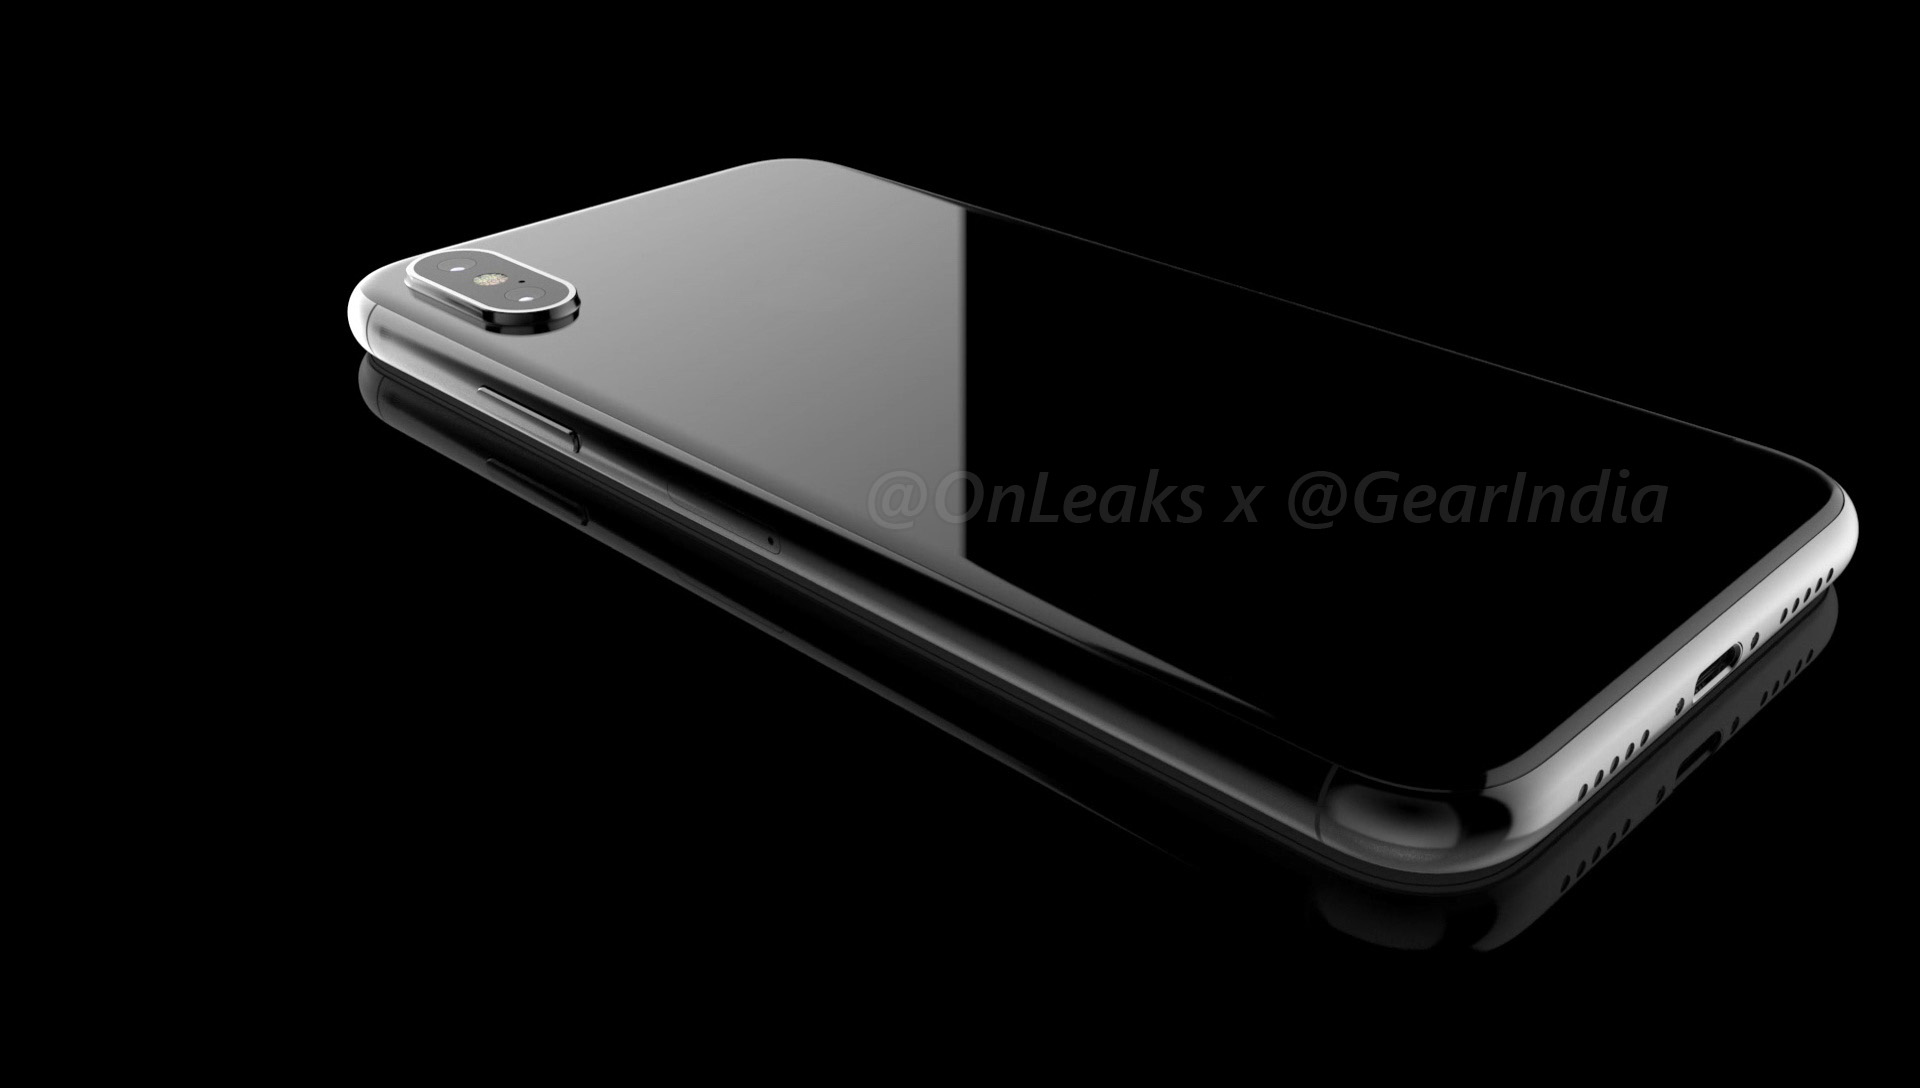 onleaks-iphone-8-lauren-blog-5.jpg